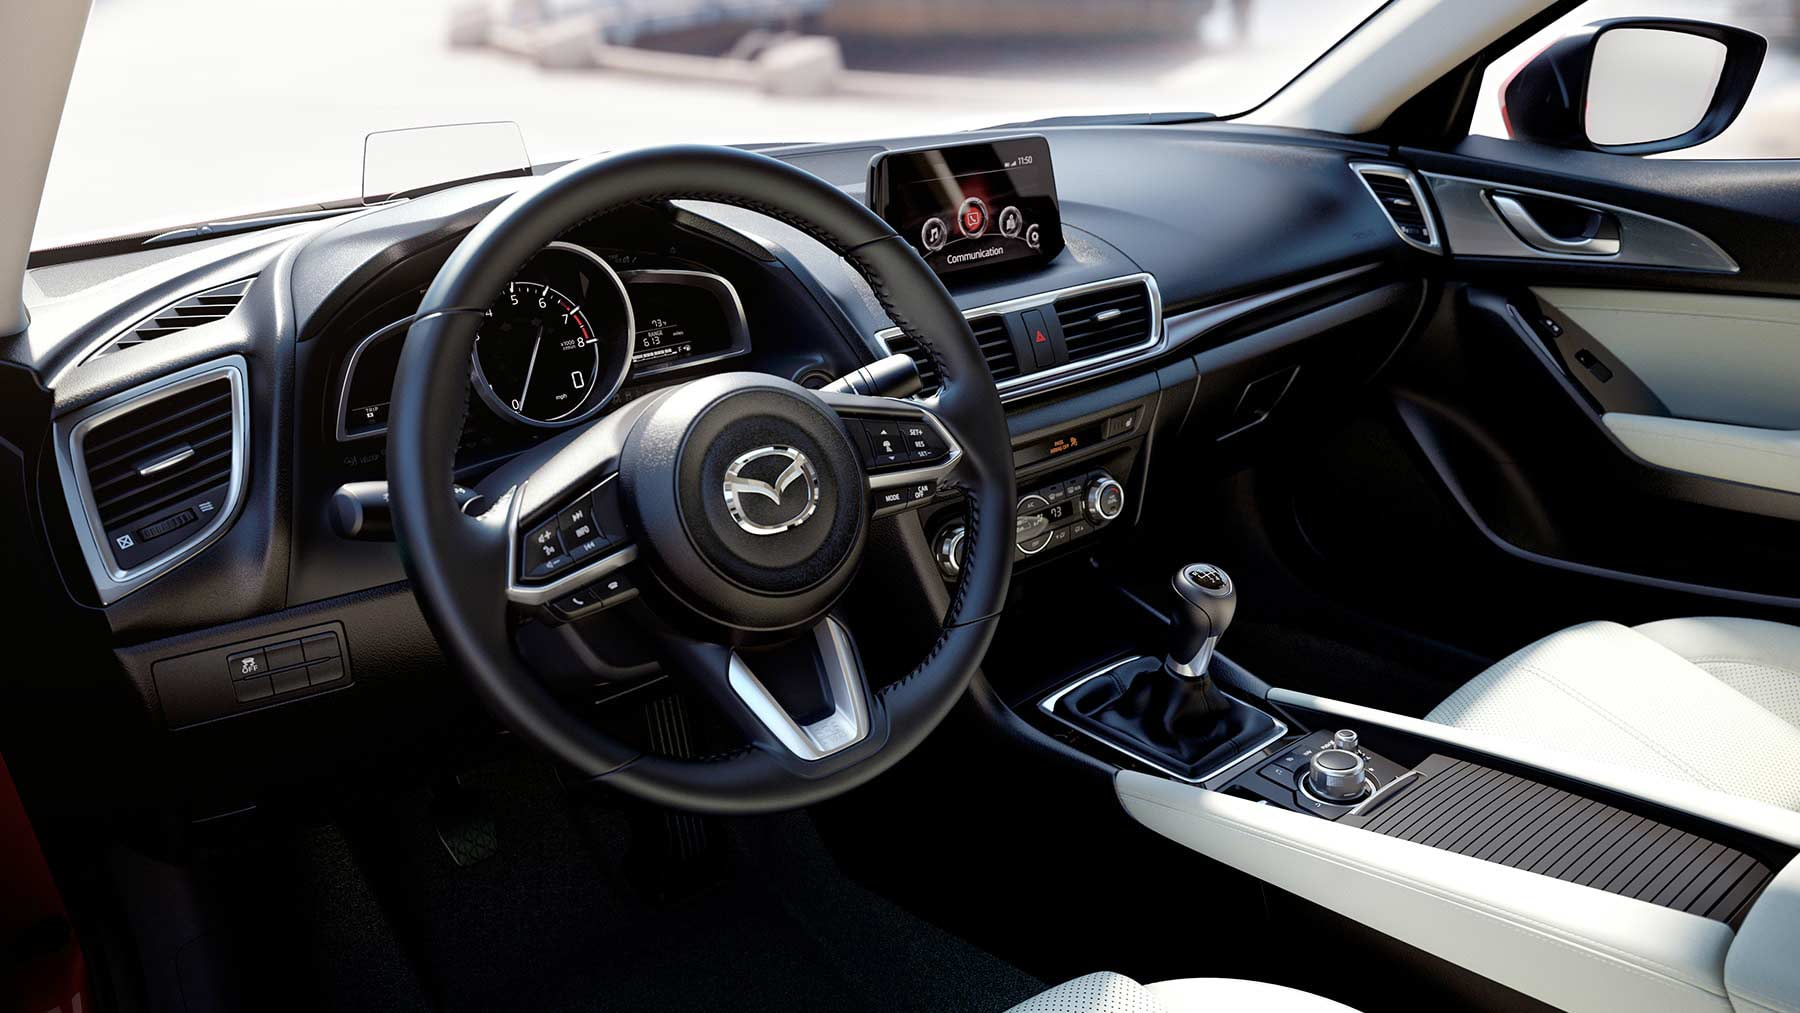 2018 mazda 3 hatchback fuel efficient compact car for Interior site